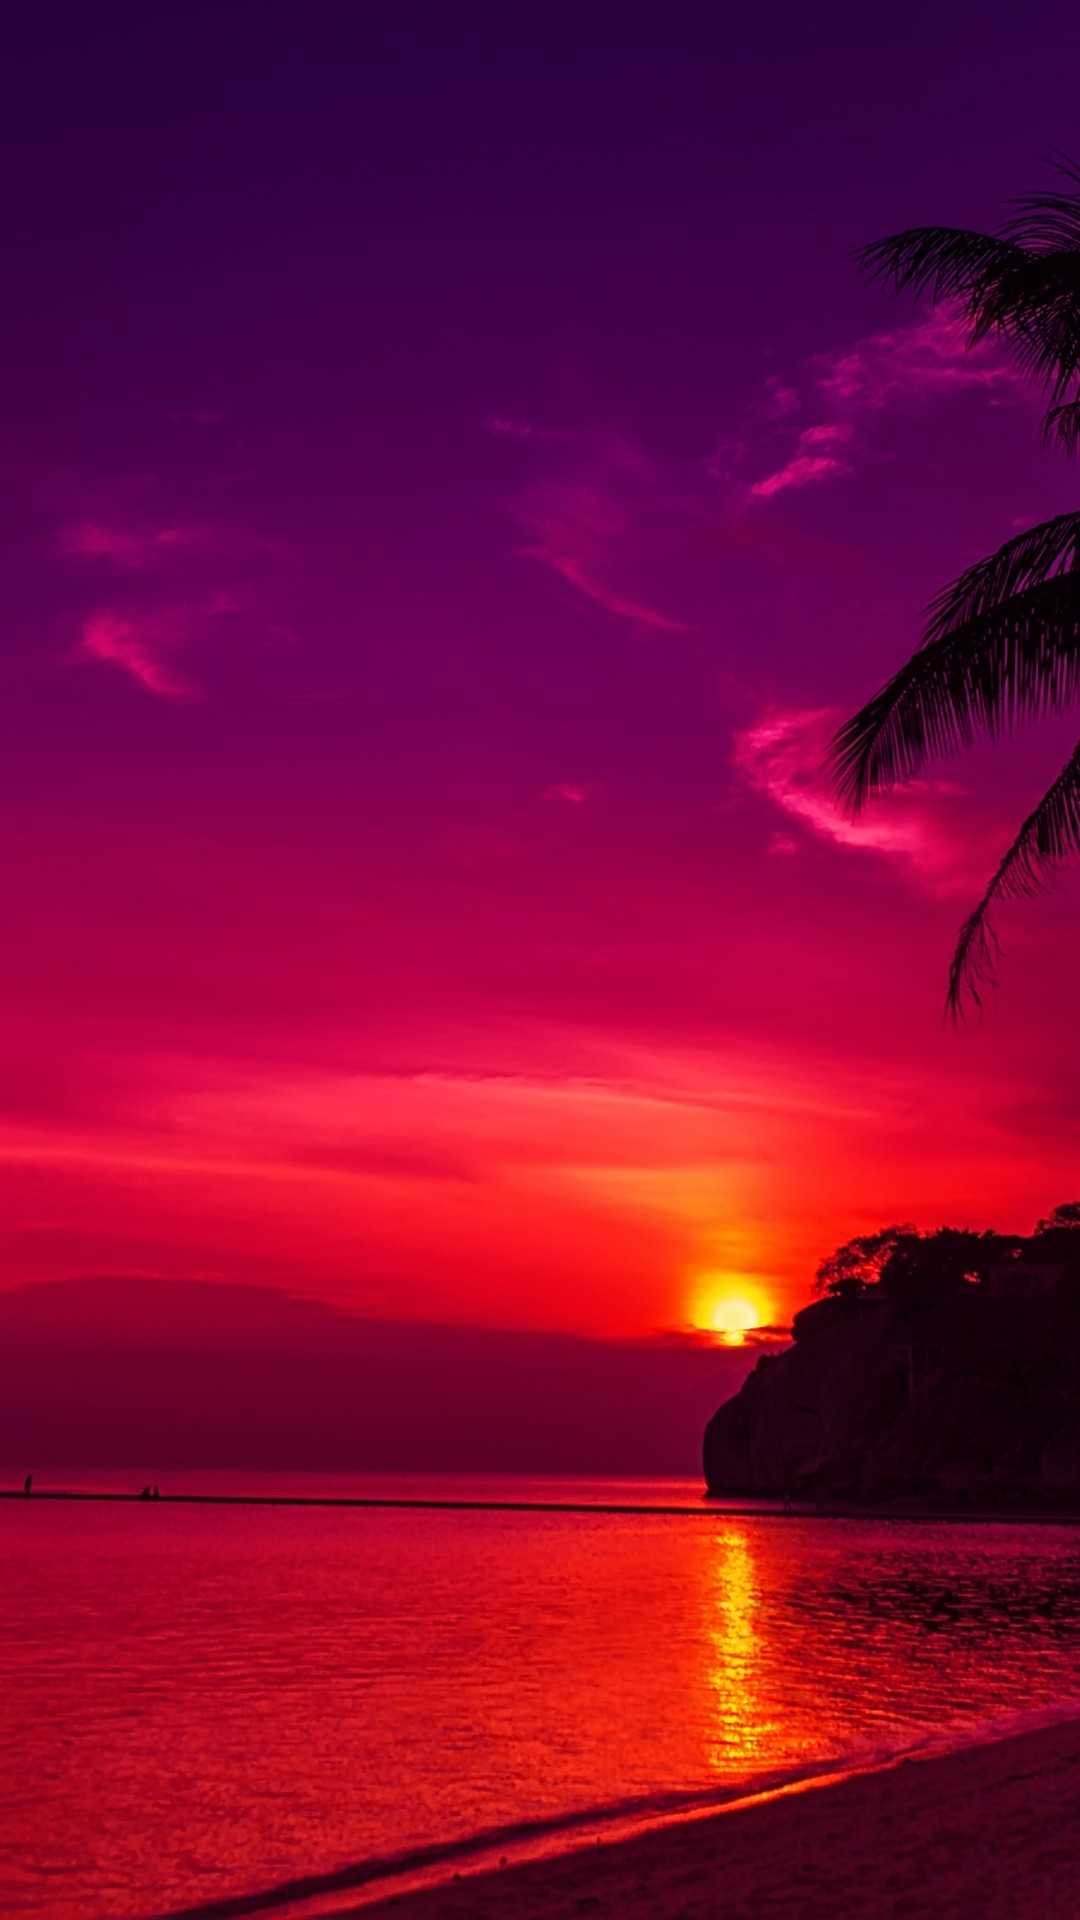 Iphone Wallpaper Hd Sunset With High-resolution Pixel - Hd Phone Background Aesthetic - HD Wallpaper